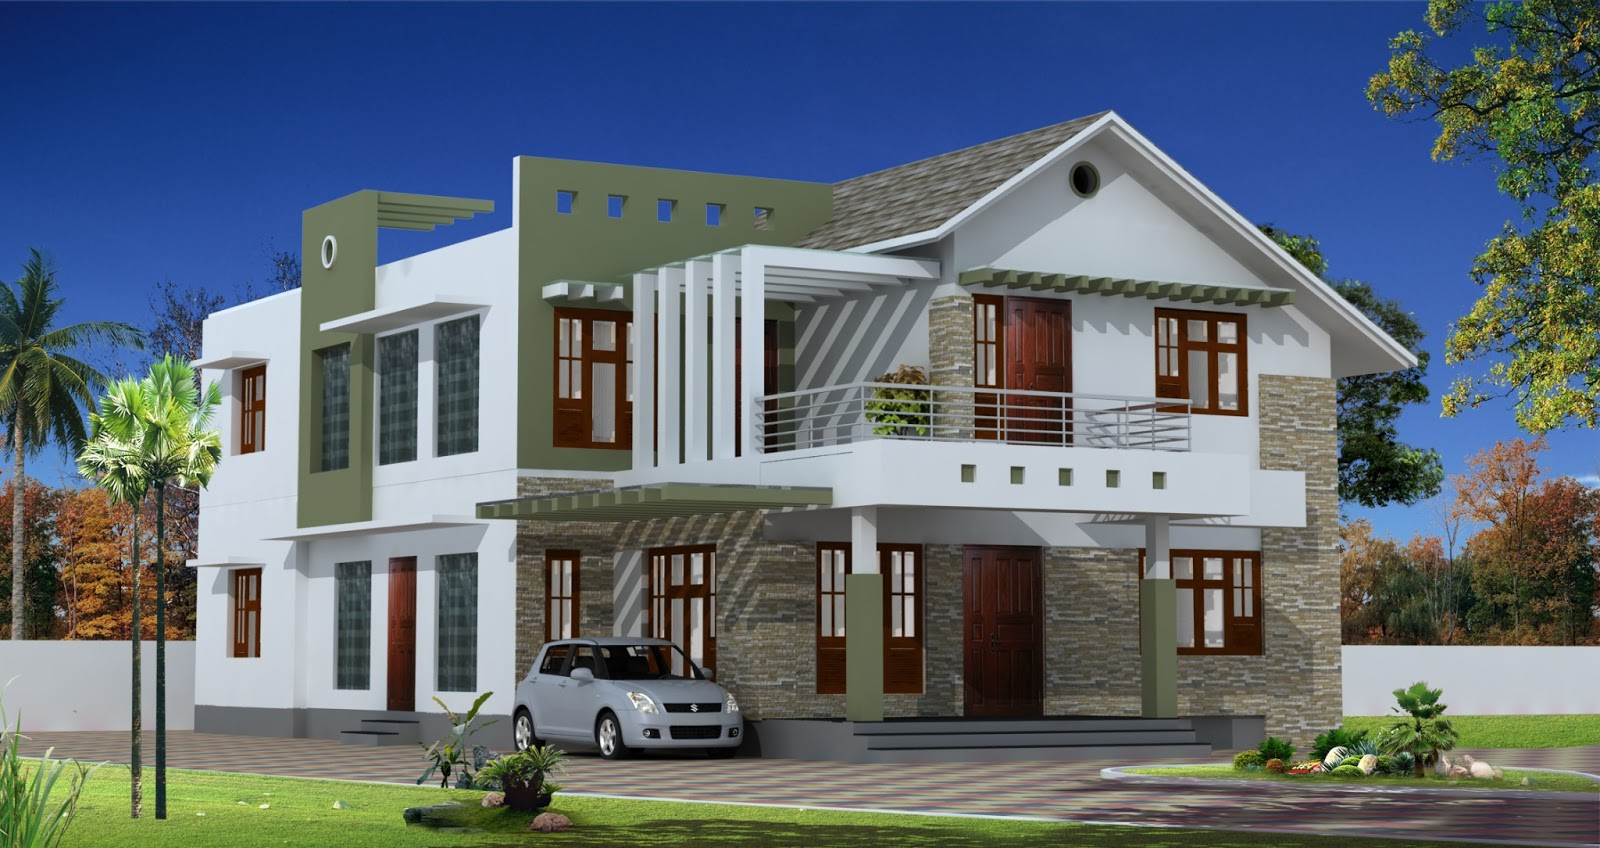 Latest home designs original home designs for Latest house designs 2015